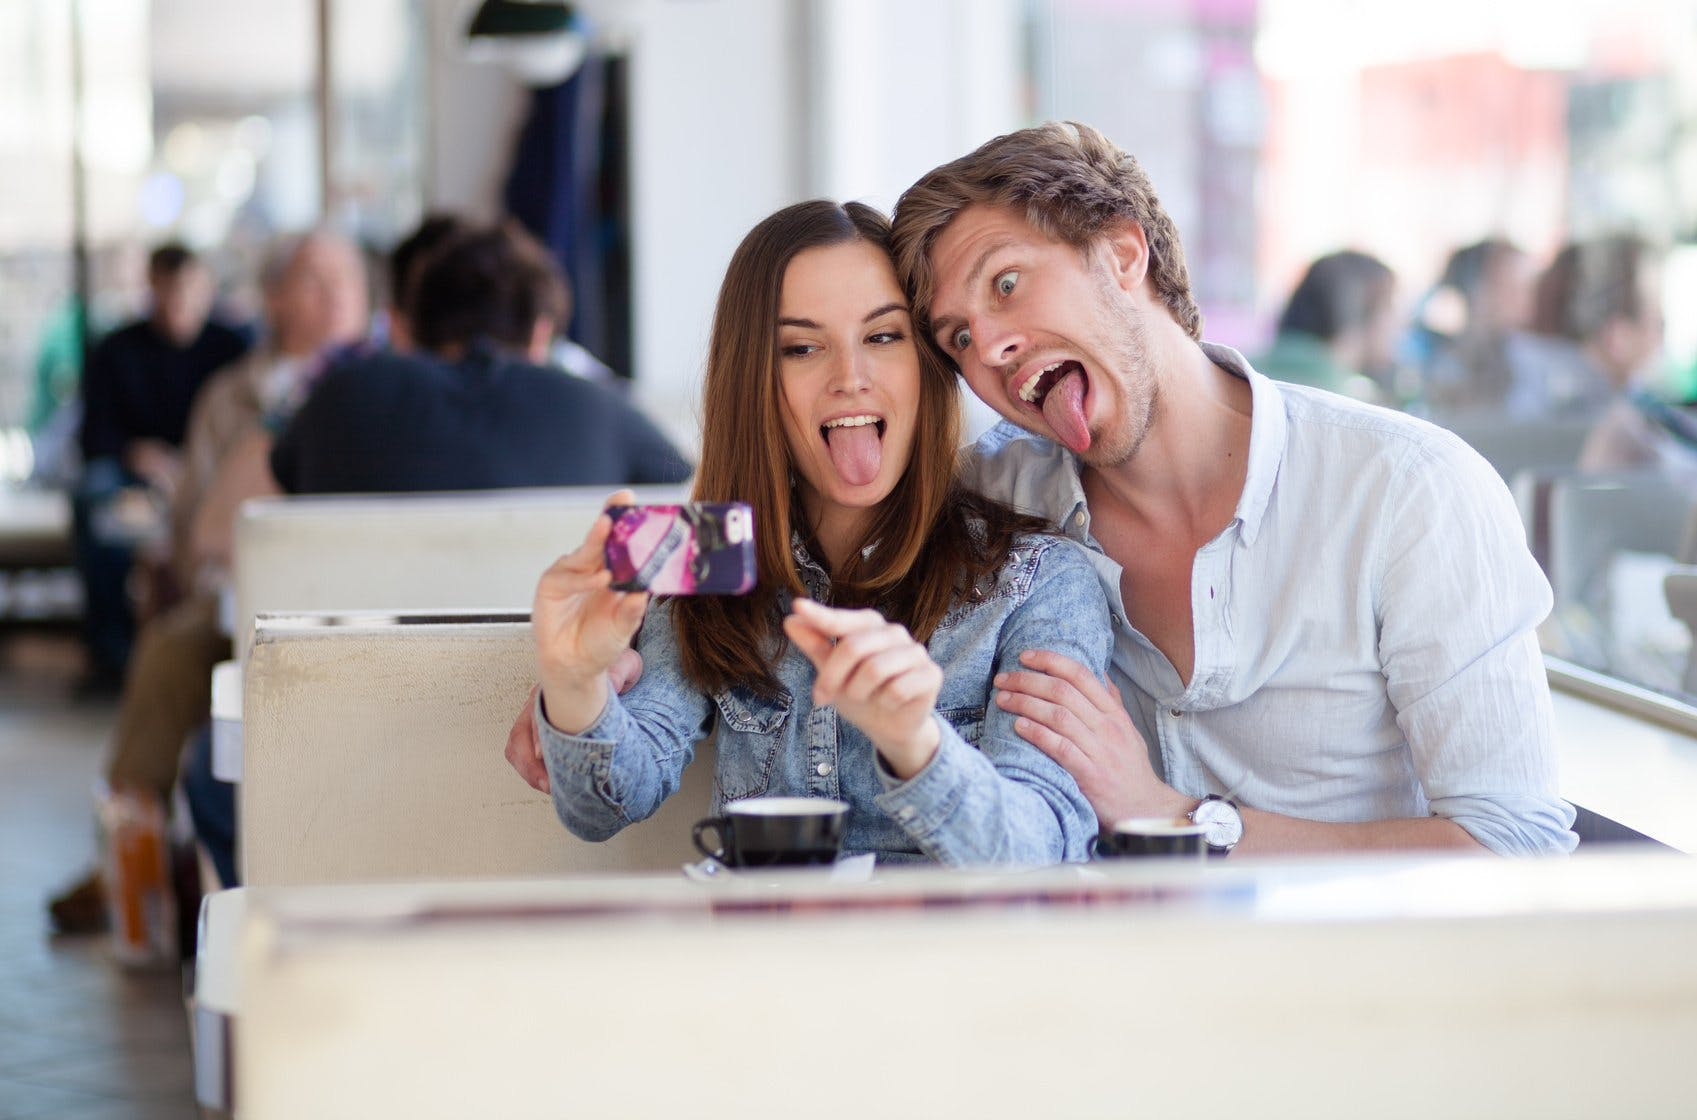 4 Reasons A Profile Photo Will Improve Your Search For Love